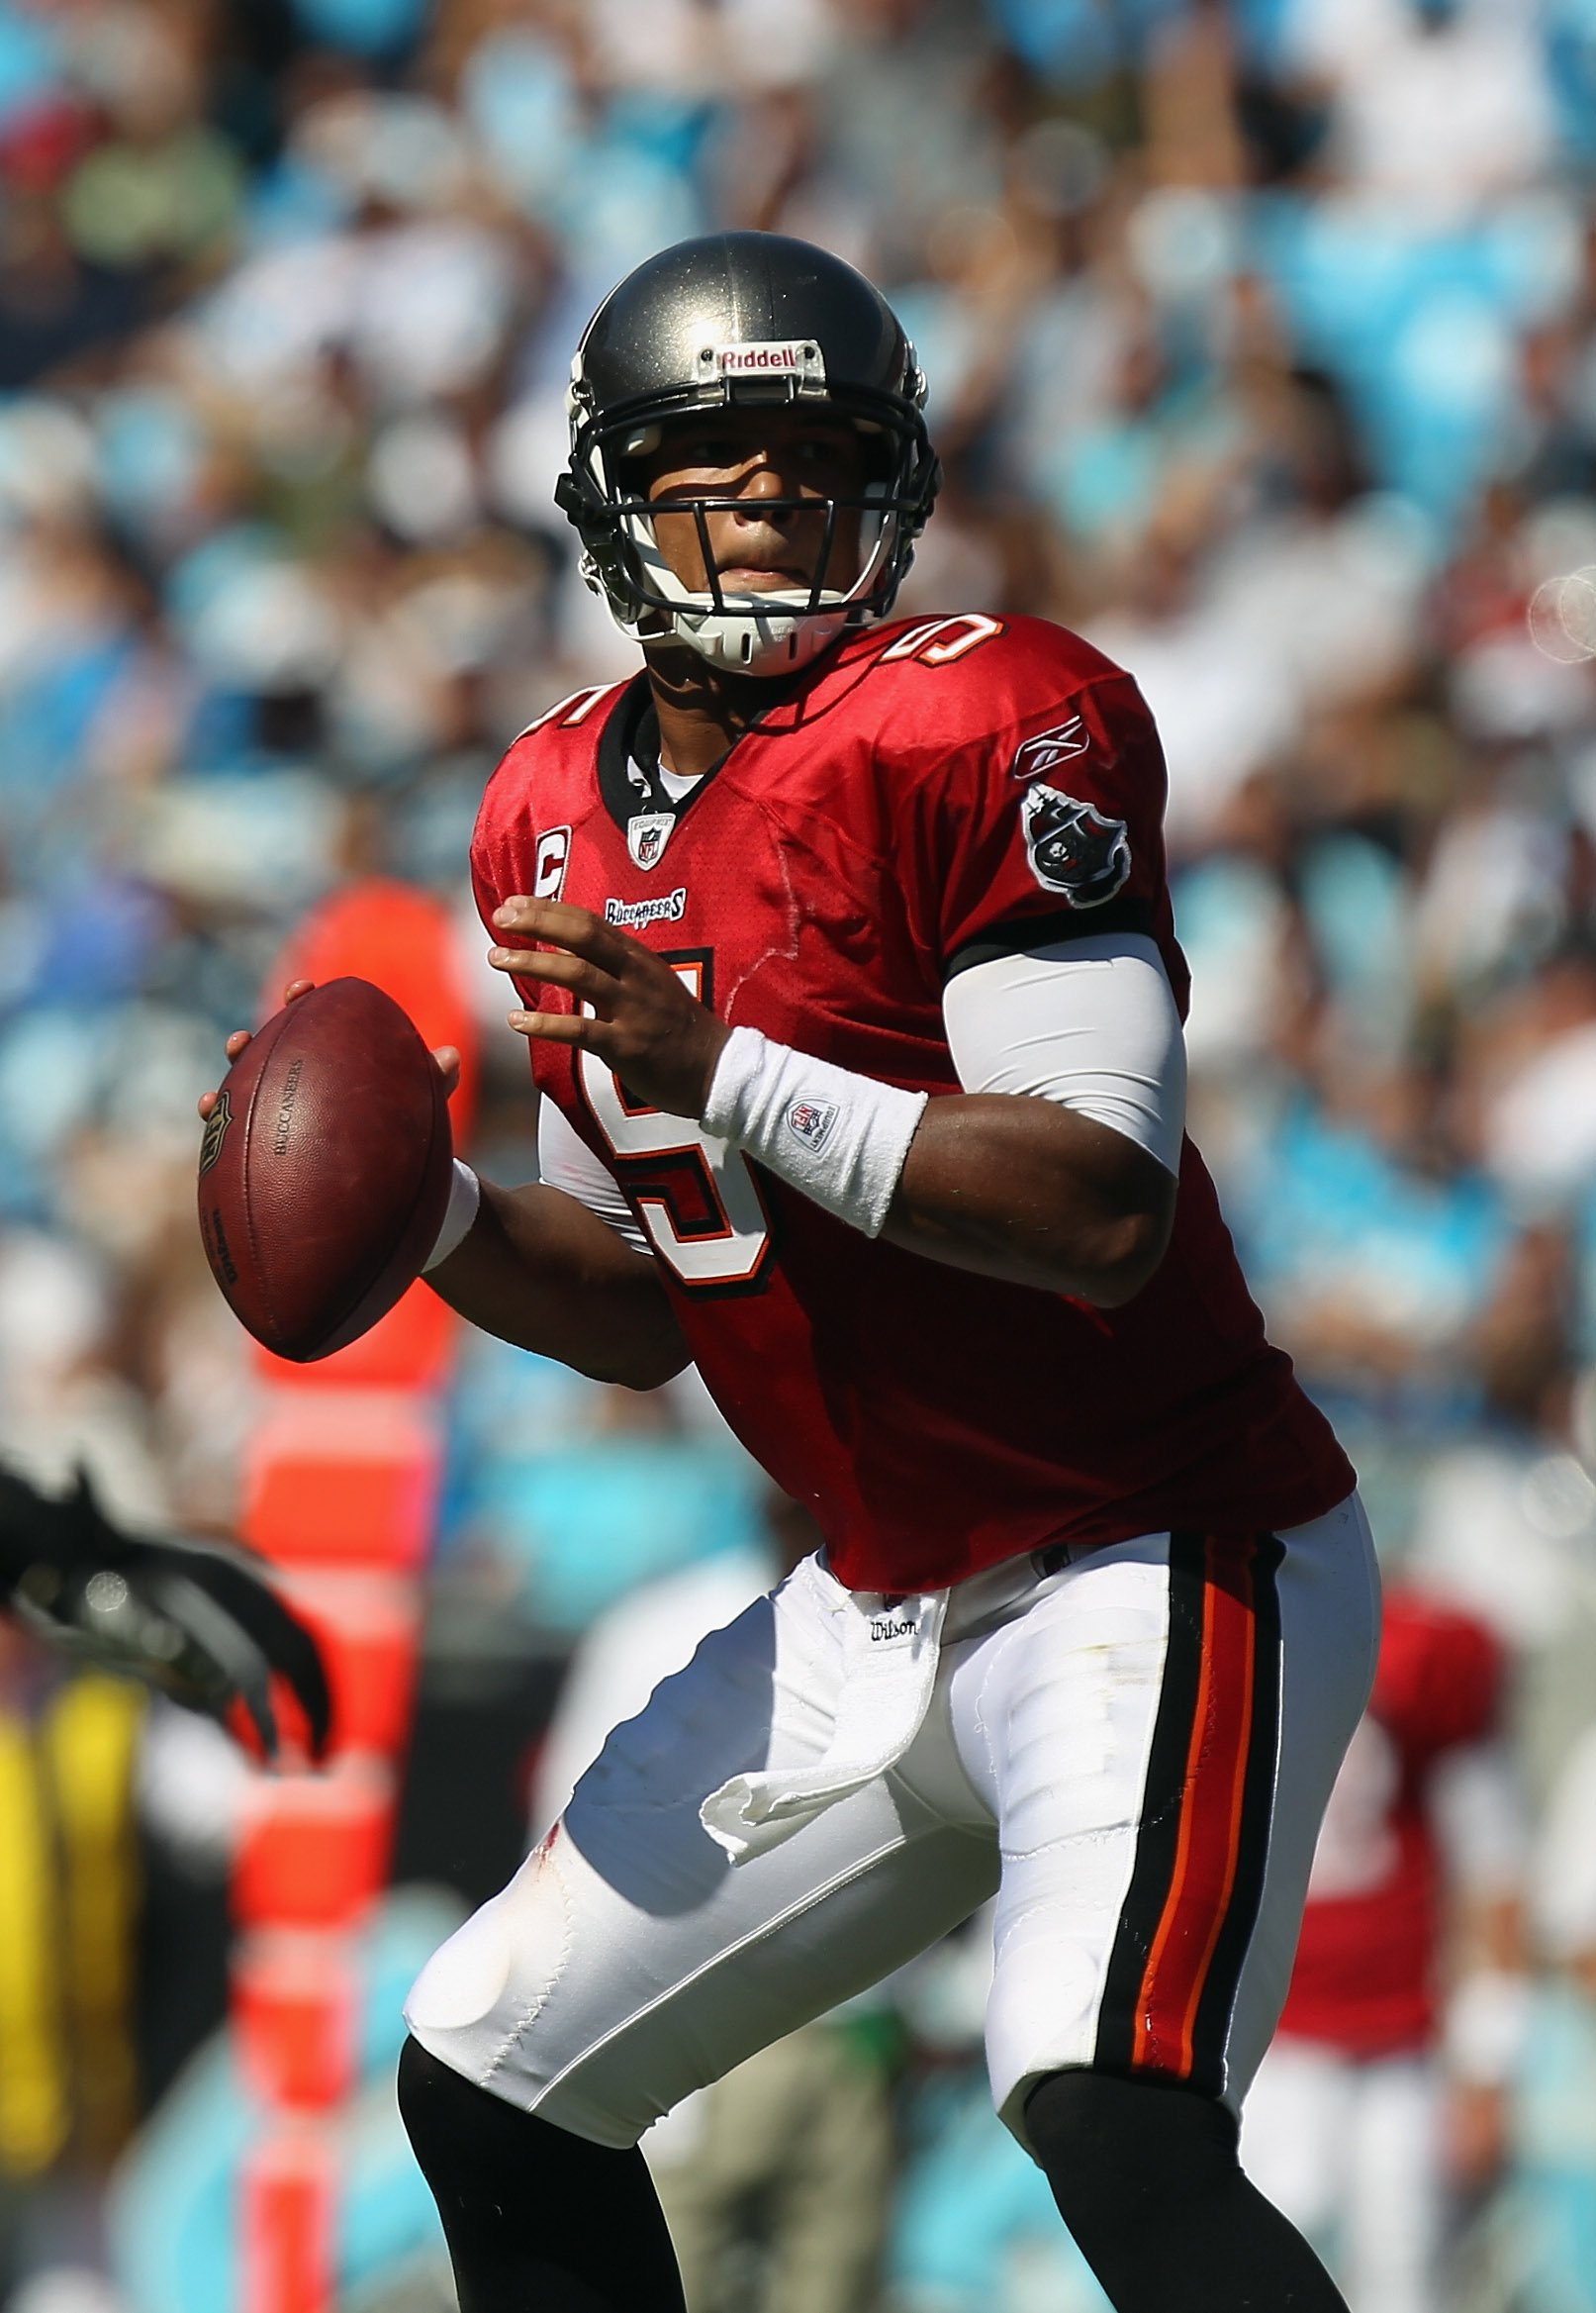 CHARLOTTE, NC - SEPTEMBER 19:  Josh Freeman #5 of the Tampa Bay Buccaneers throws a pass against the Carolina Panthers during their game at Bank of America Stadium on September 19, 2010 in Charlotte, North Carolina.  (Photo by Streeter Lecka/Getty Images)